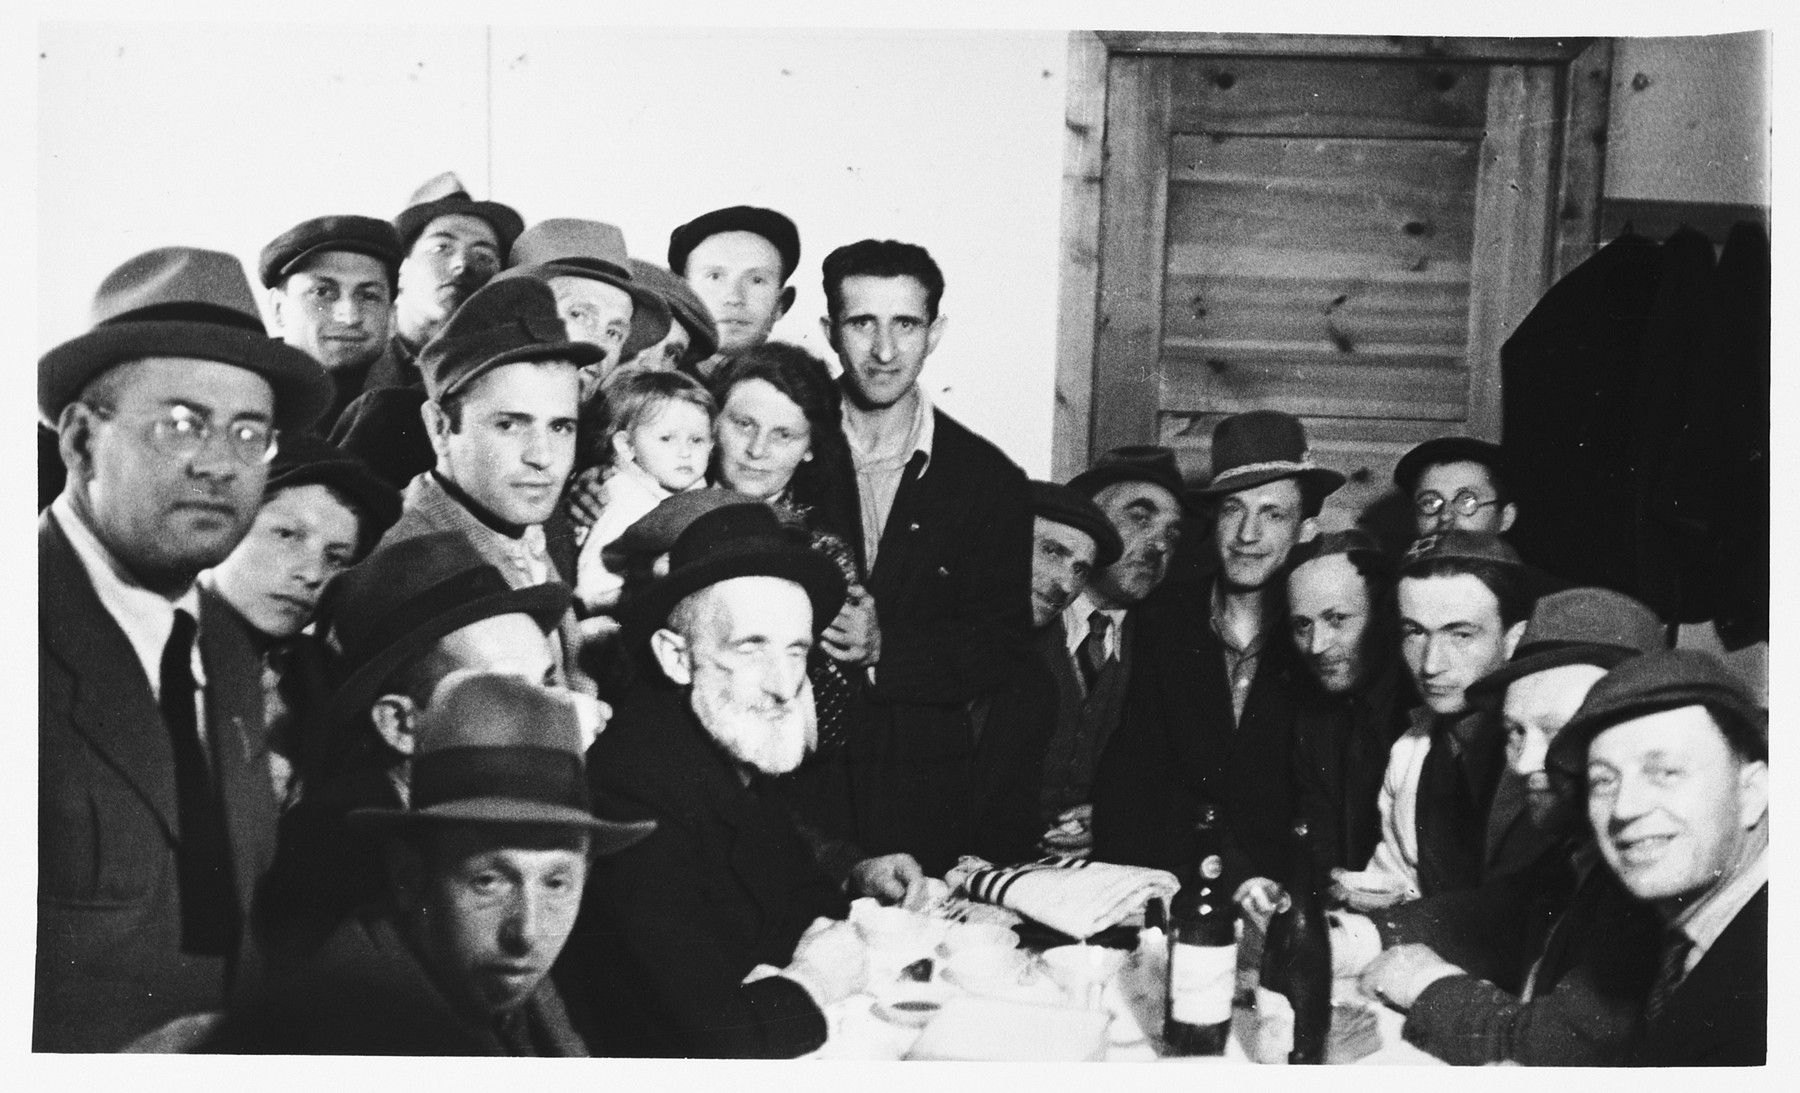 A group of religious Jewish DPs crowd around a table set with food and bottles of wine at the Schlachtensee displaced persons camp.